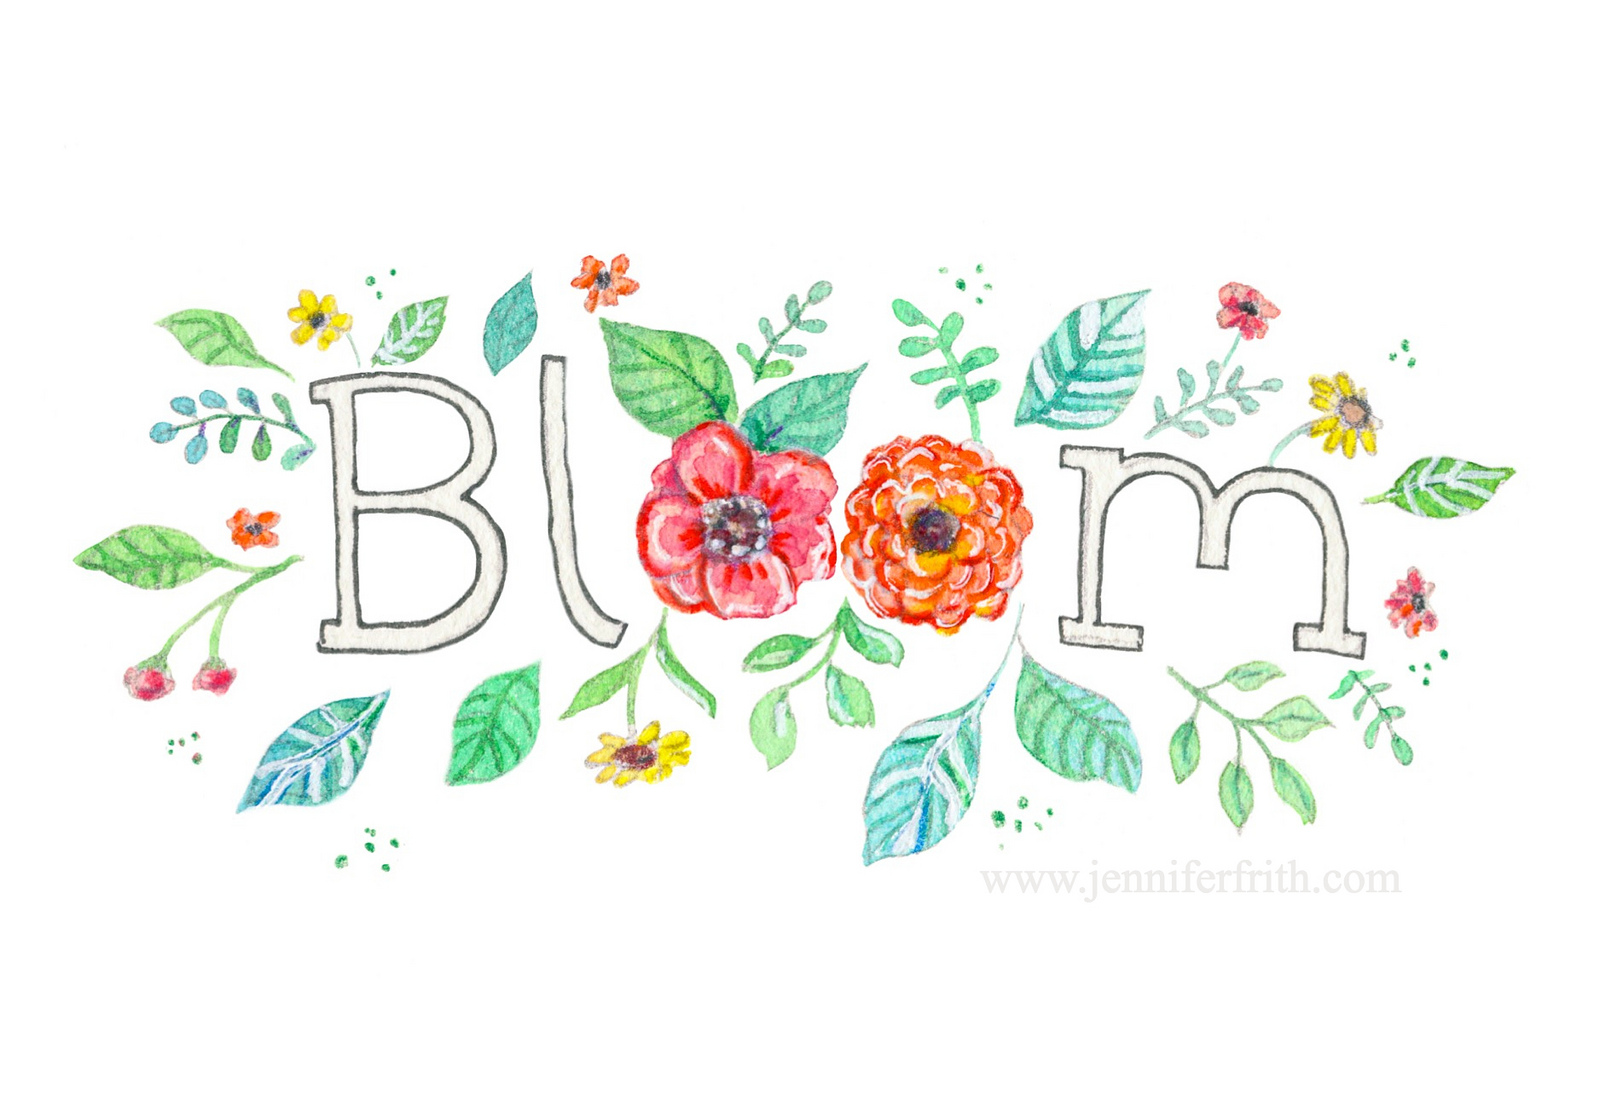 Jennifer Frith - Illustrator - Bloom - My One Word